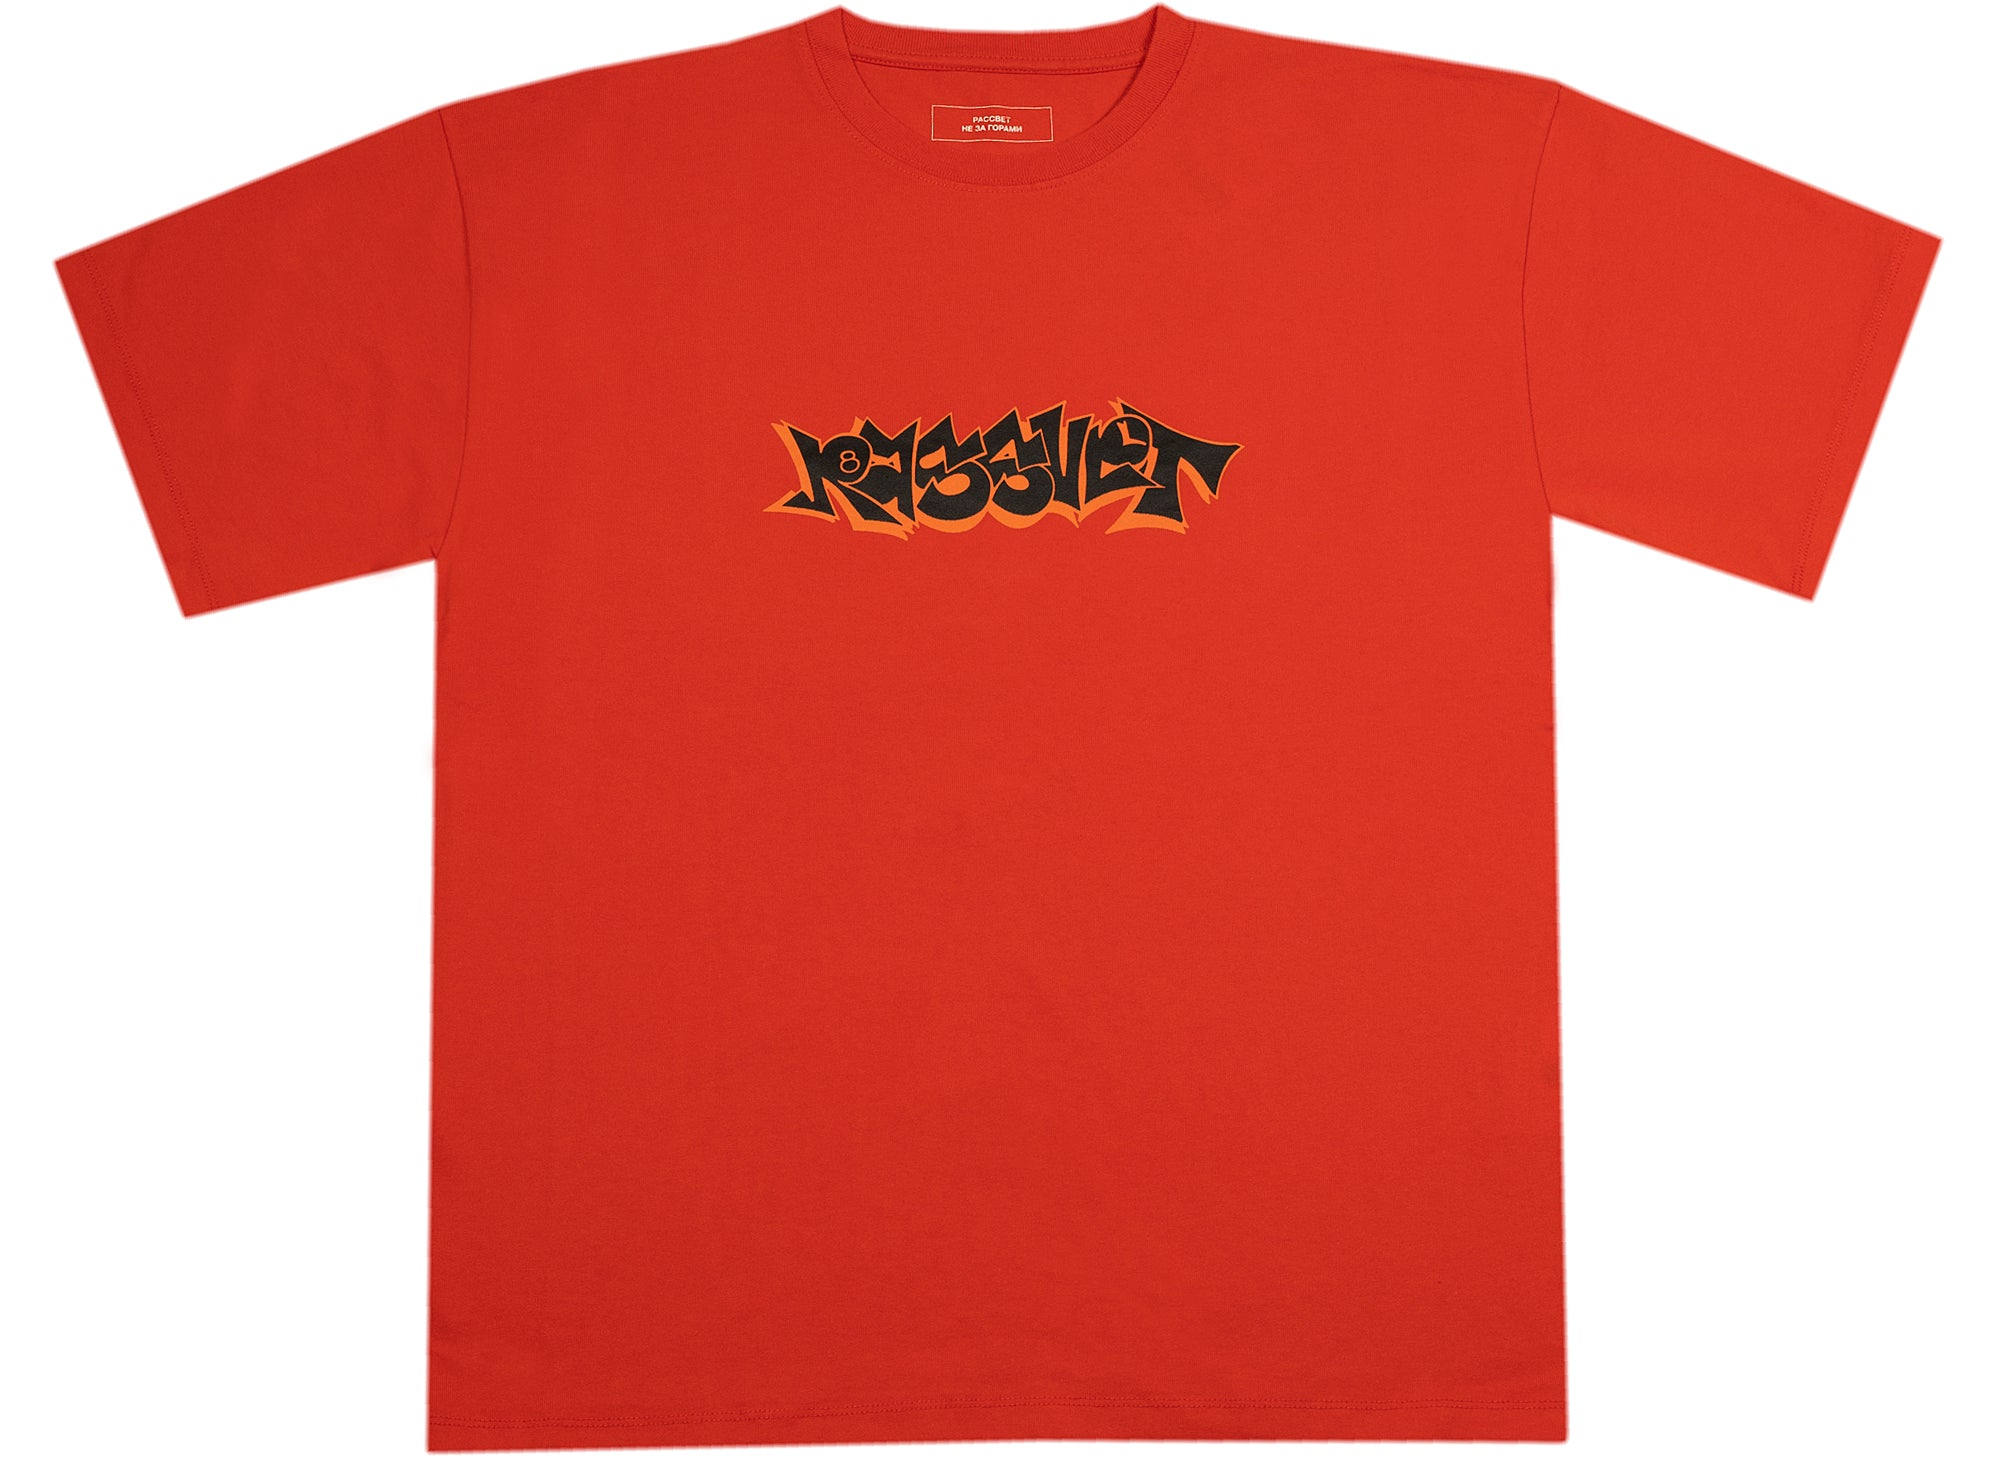 Rassvet (PACCBET) Graphic Tee in Red